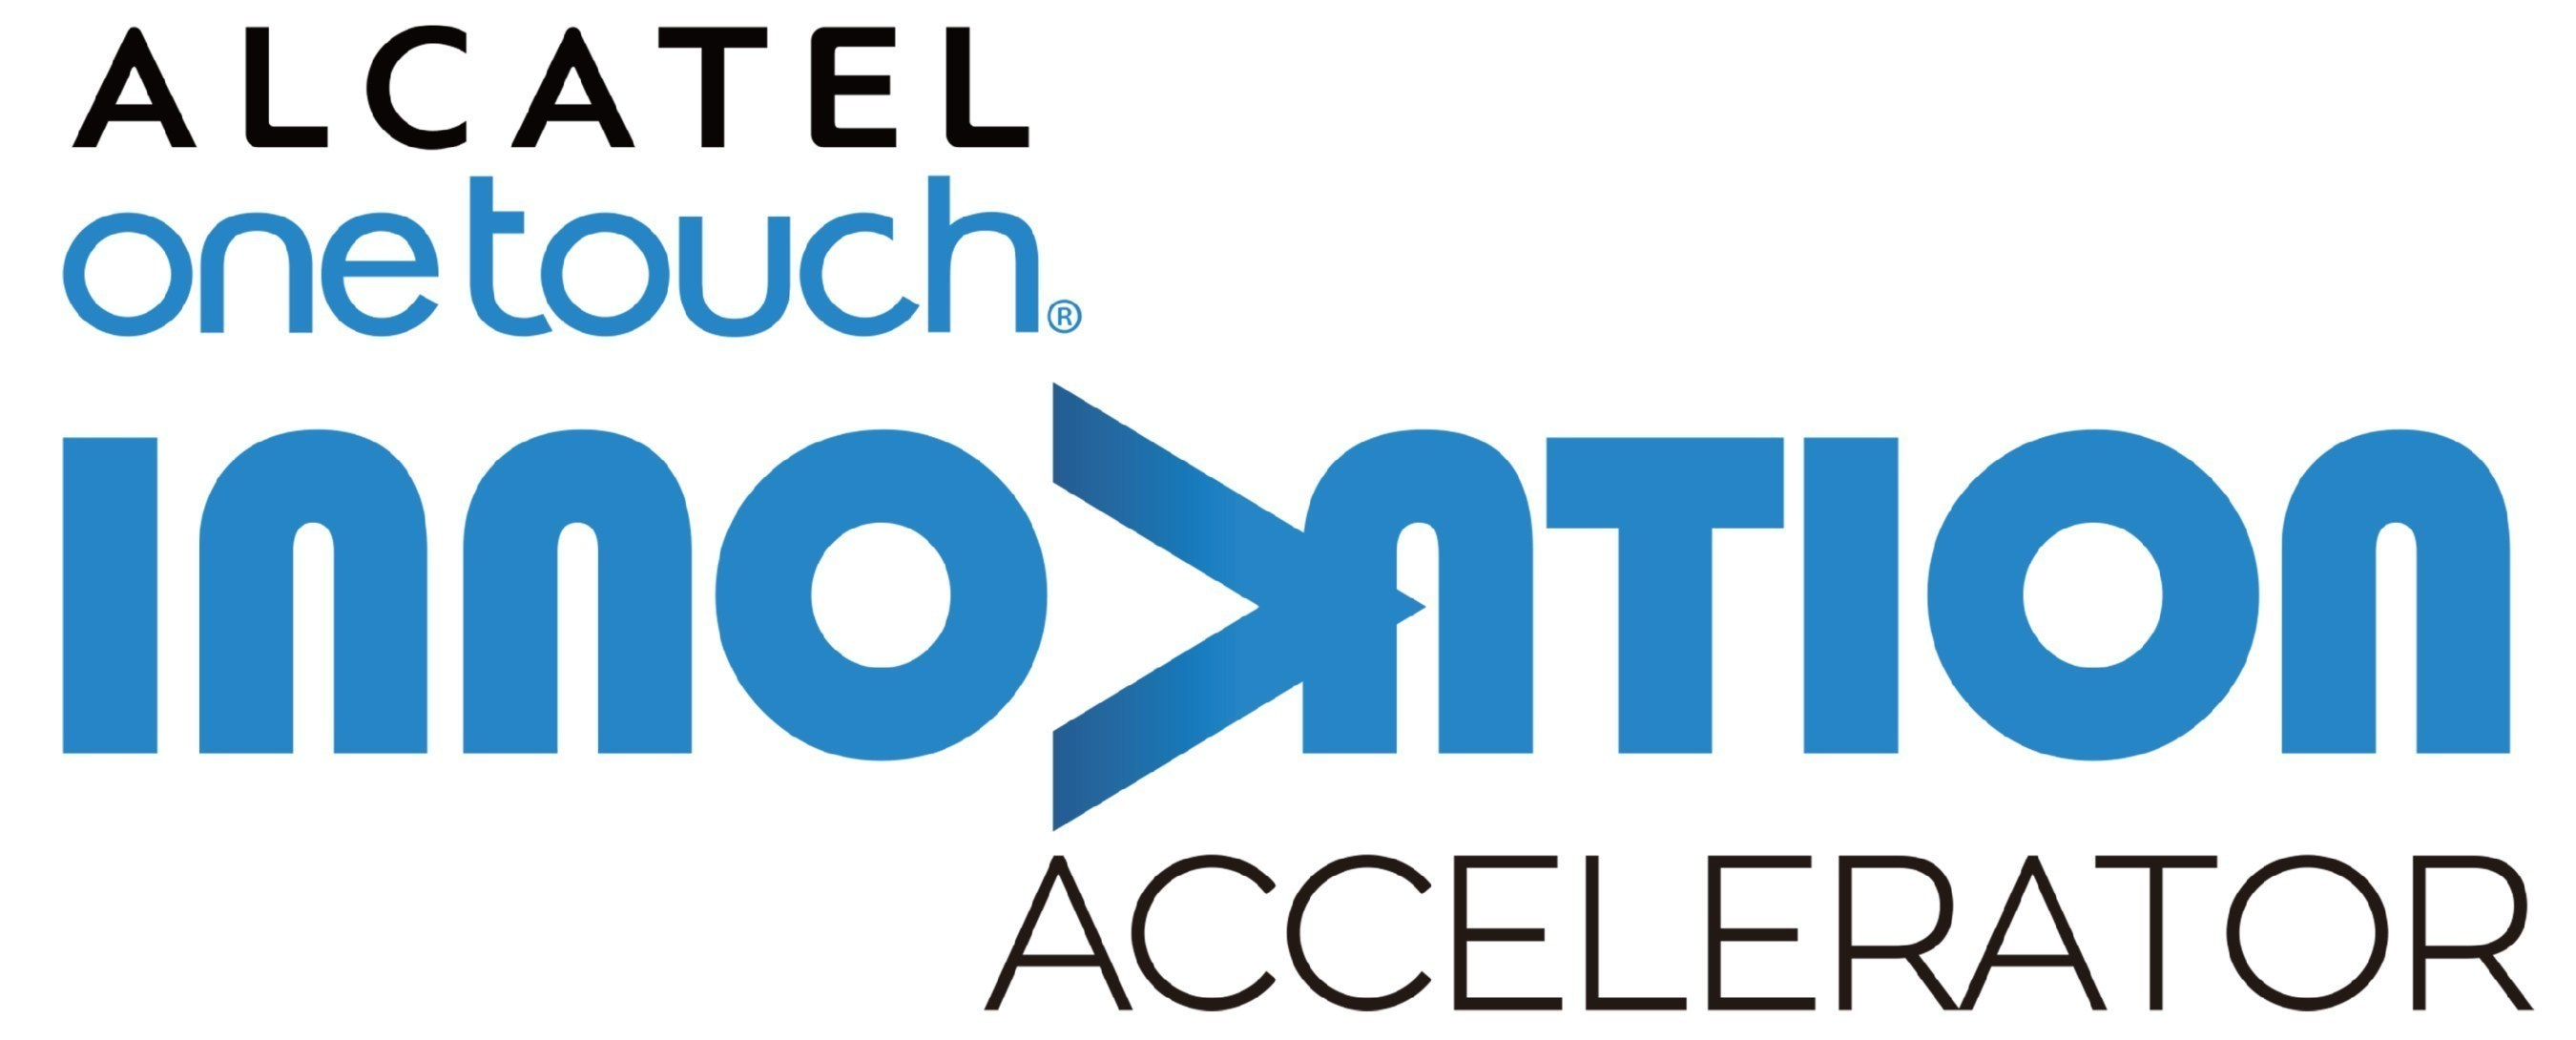 ALCATEL ONETOUCH Announces The Winners of Its Innovation Accelerator Challenge